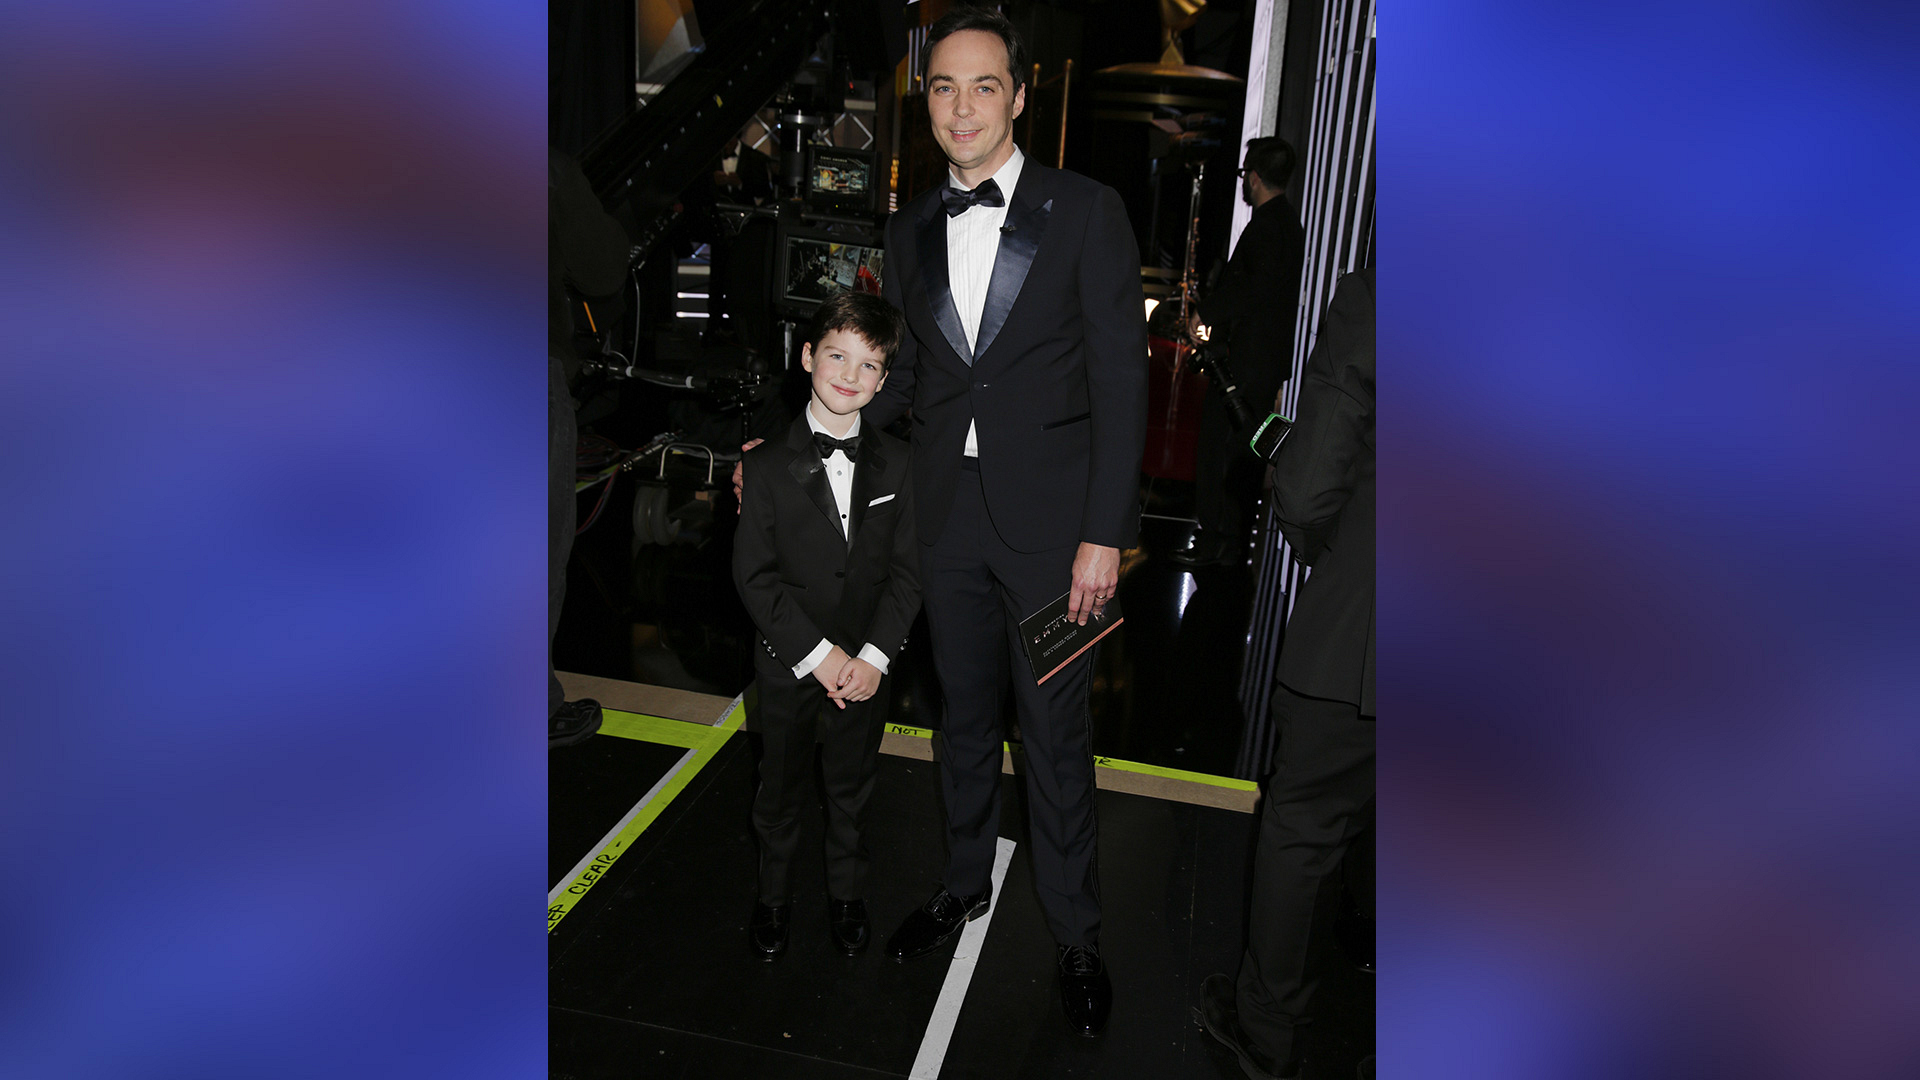 Young Sheldon star Iain Armitage and executive producer Jim Parsons show off their sleek—and similar—Emmy looks.